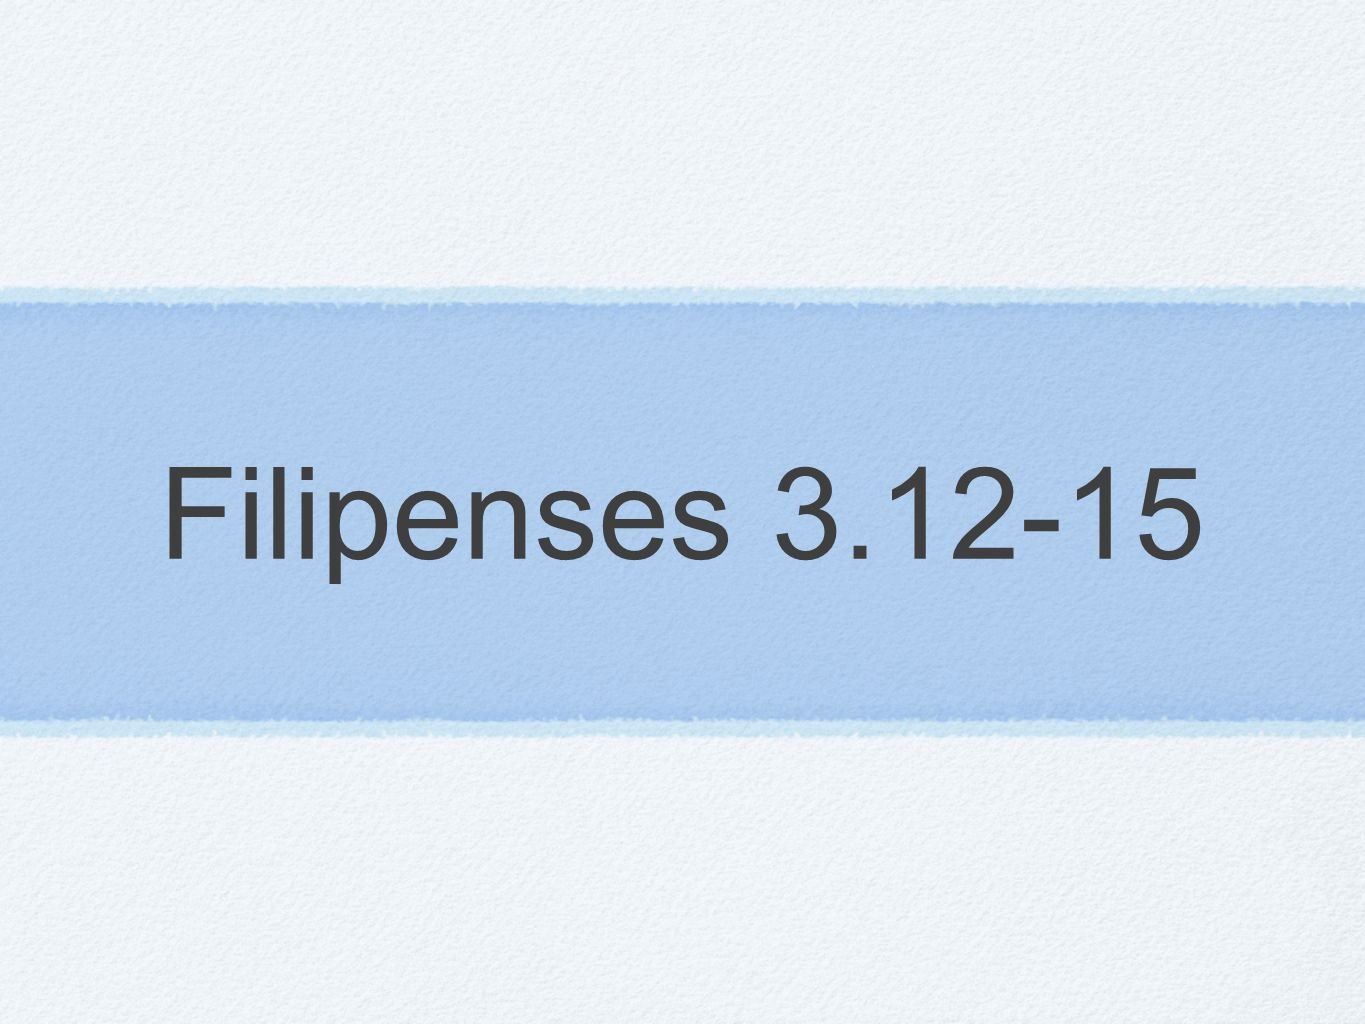 Filipenses 3.12-15